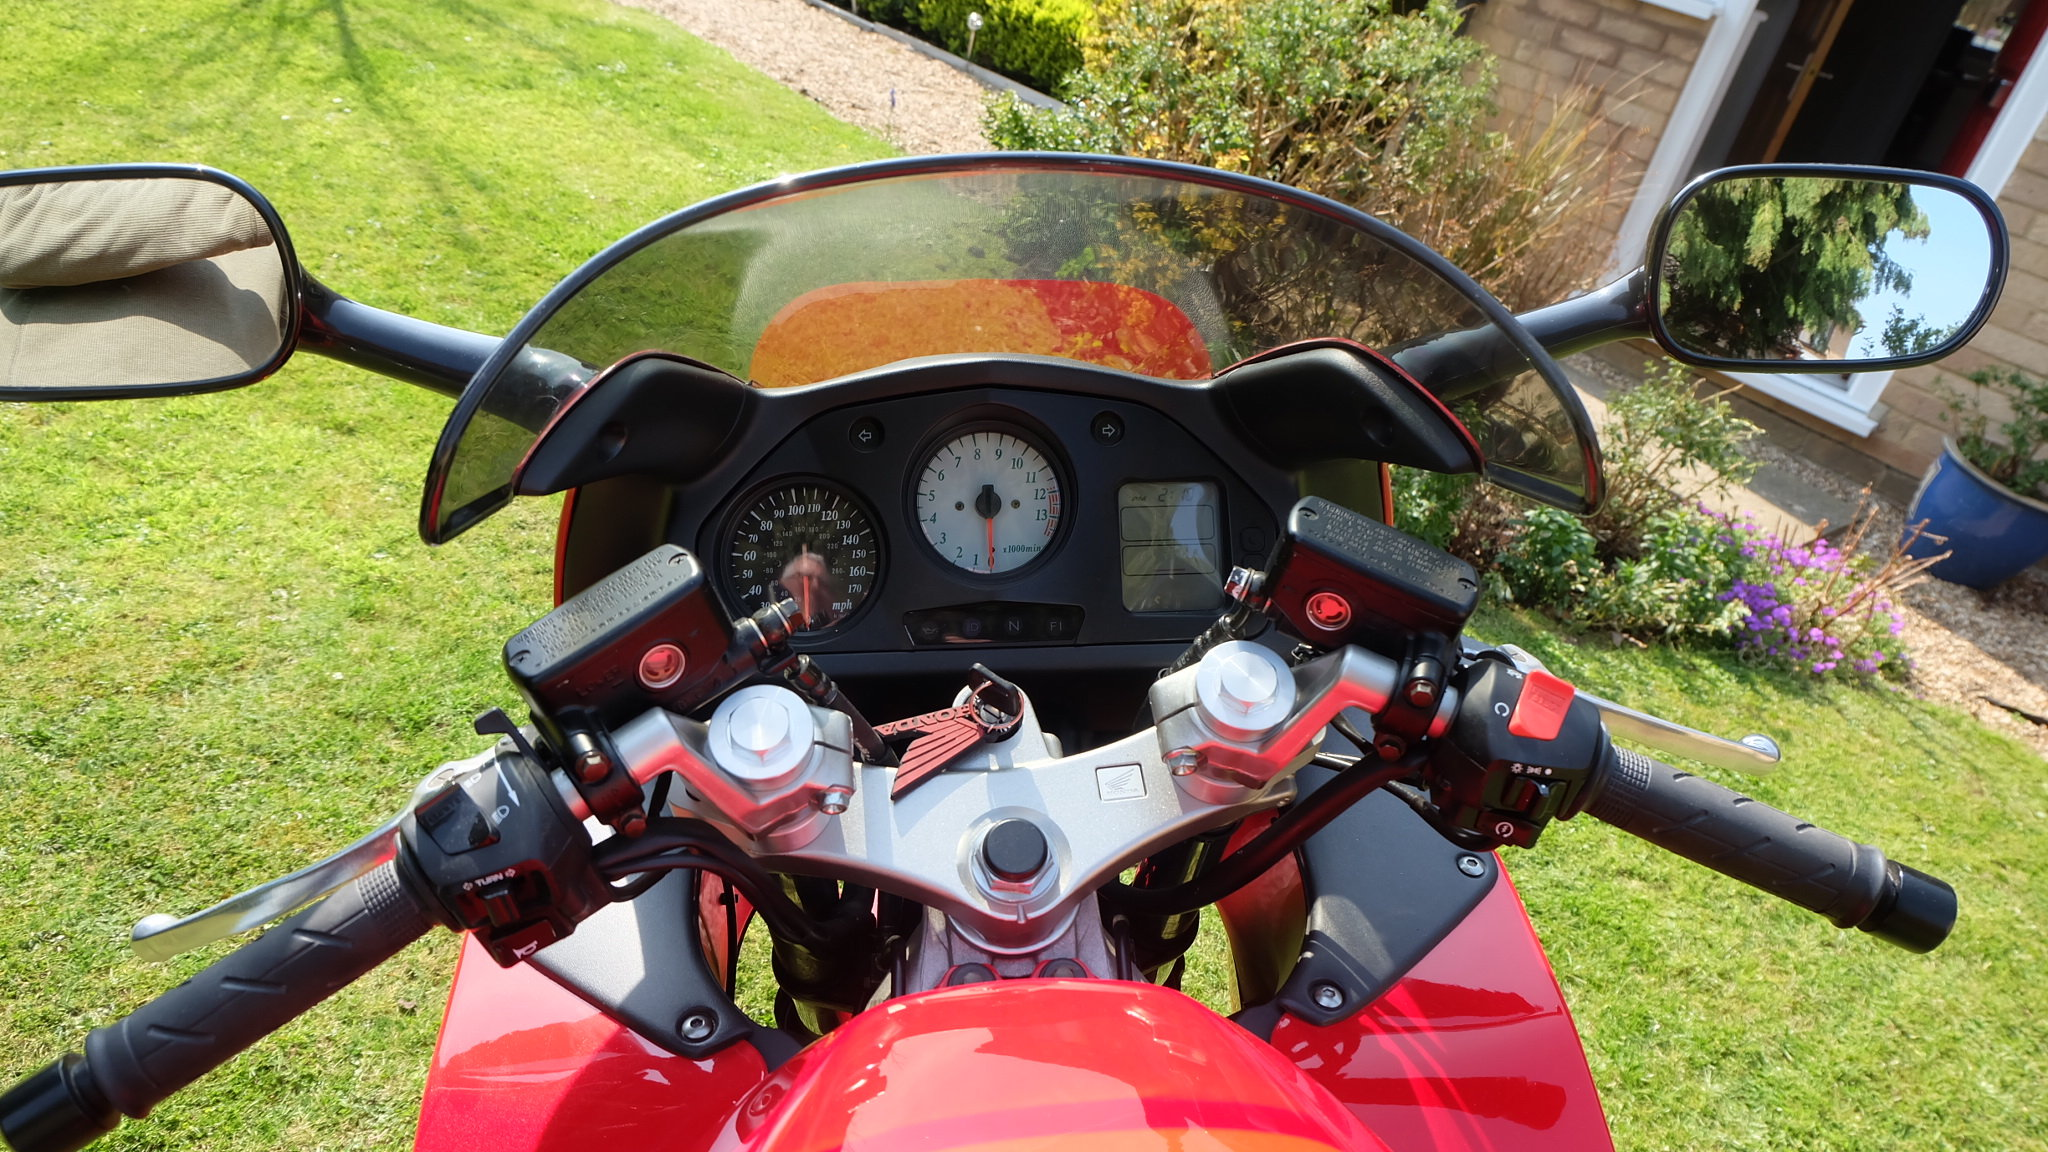 1998 Honda VFR 800 fiw 1,788 miles only  SOLD (picture 4 of 6)